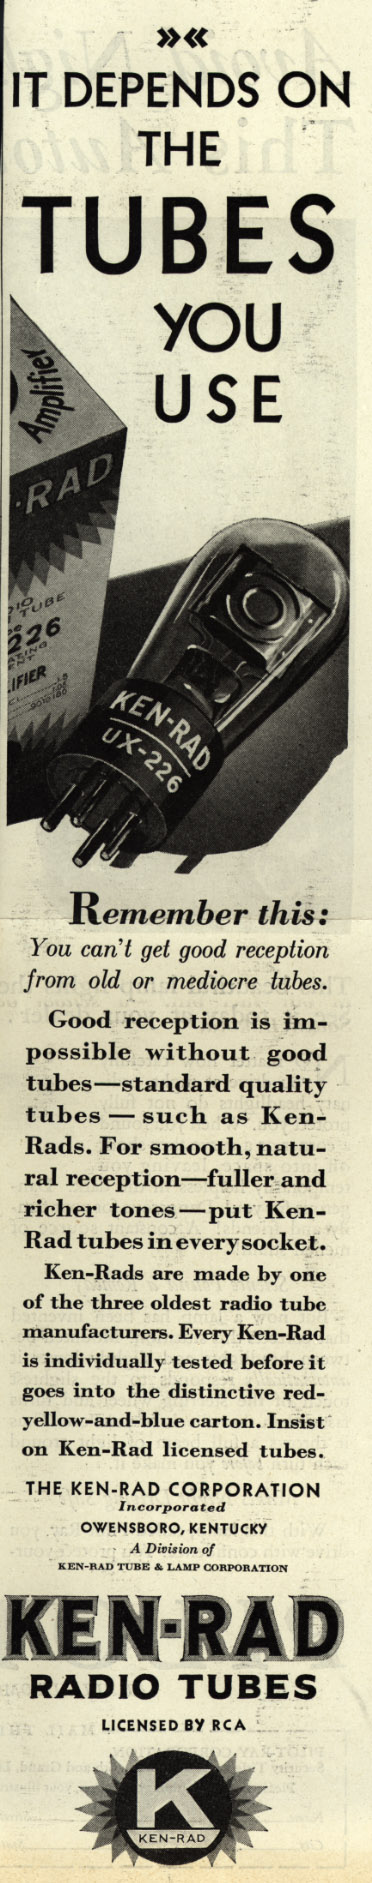 It_depends_on_the_tubes_you_use